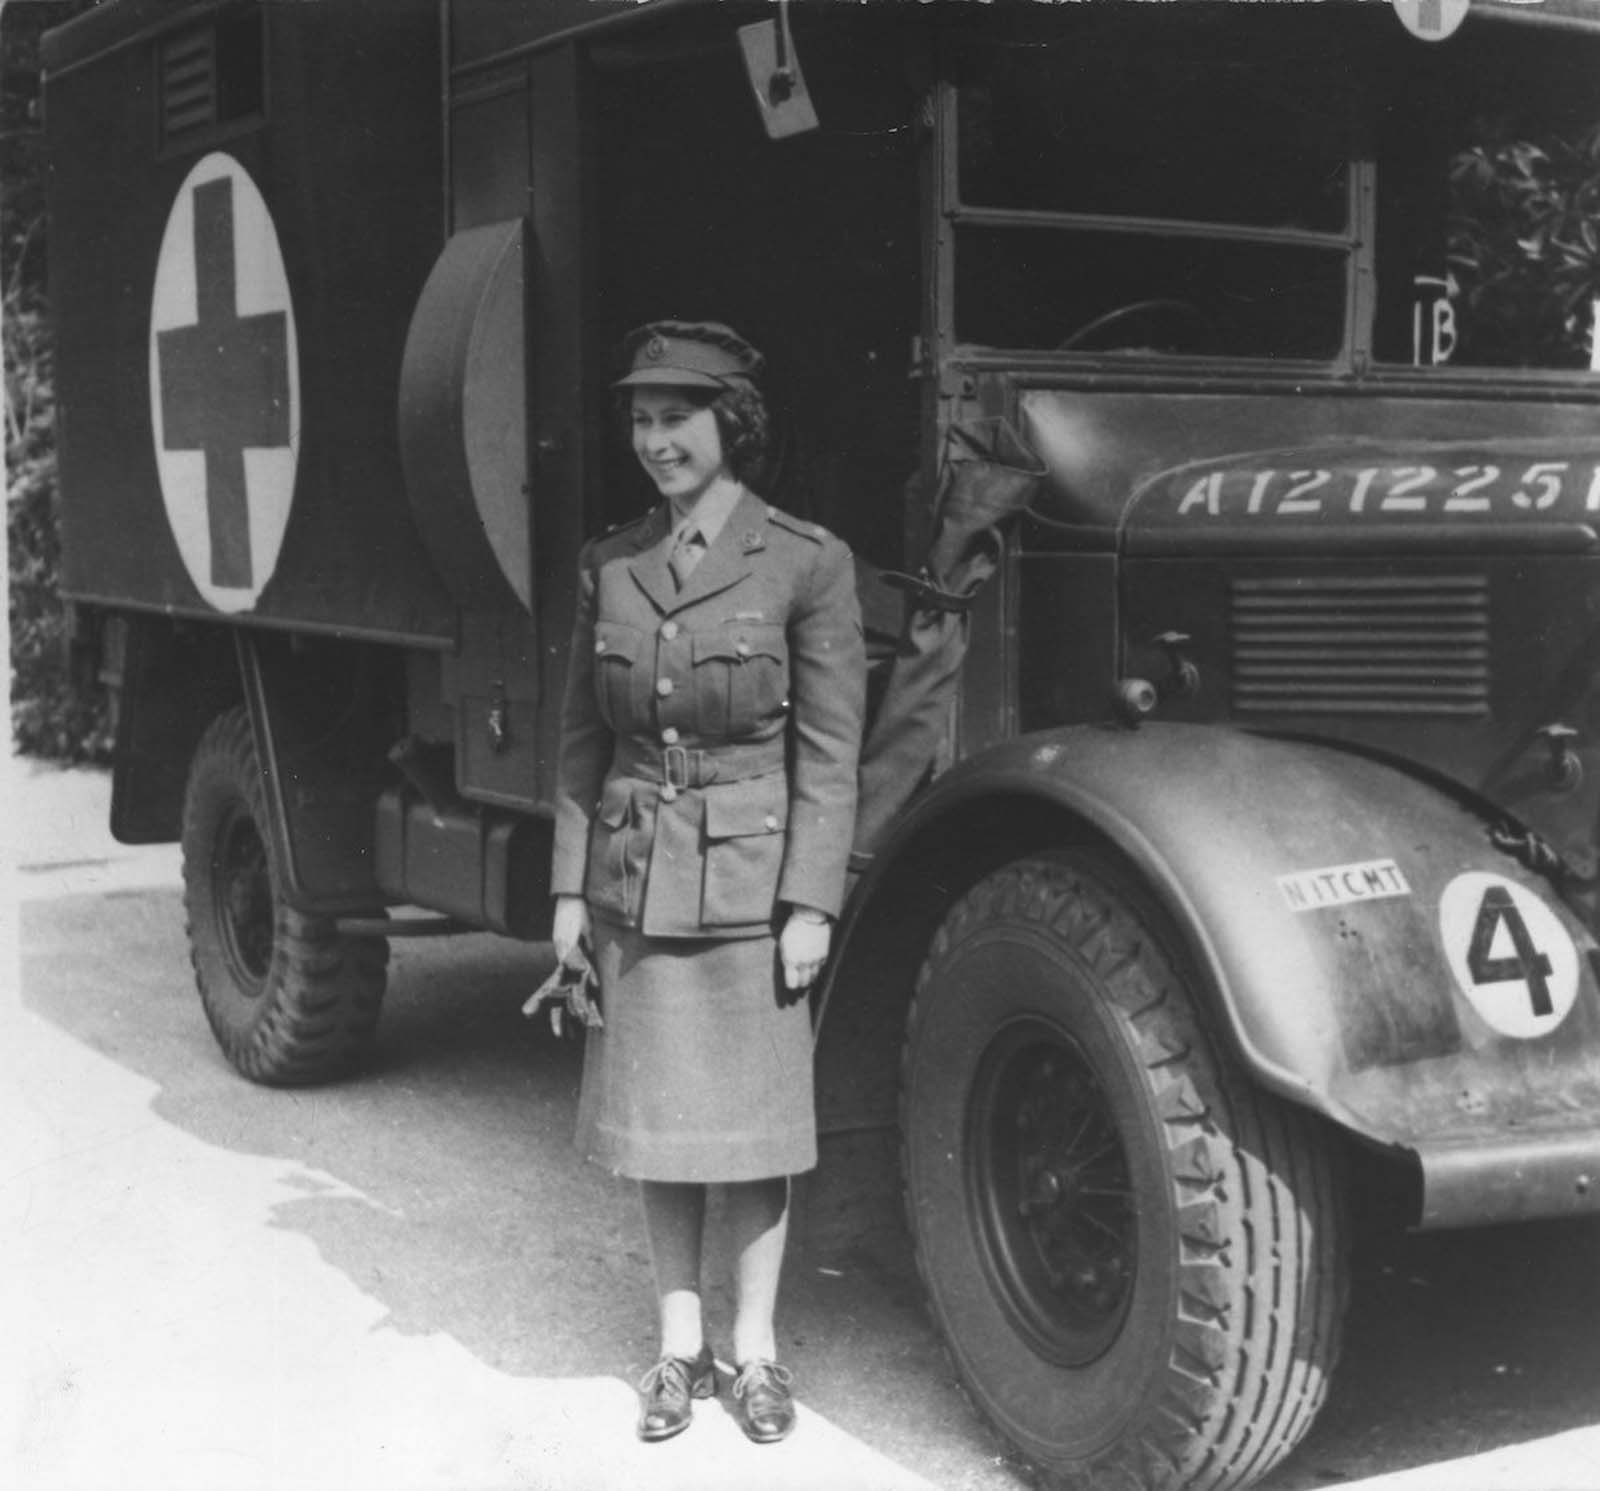 Queen Elizabeth II as a mechanic. 1945.